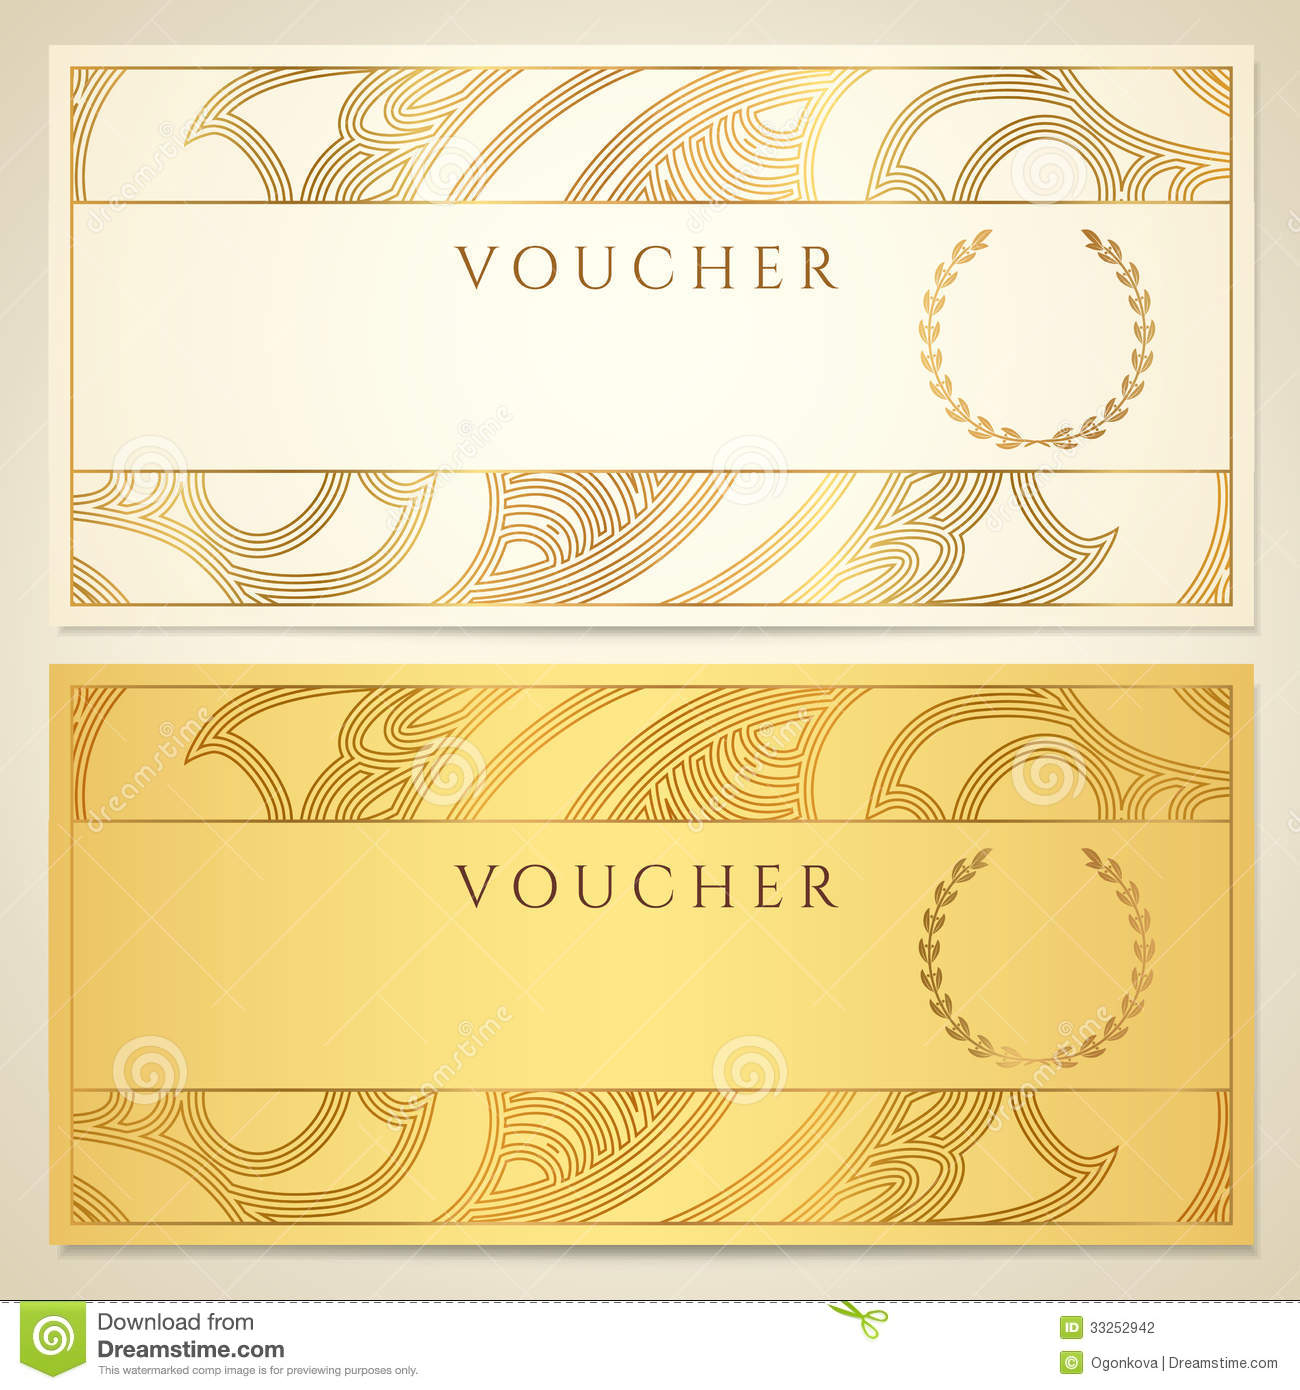 Voucher gift certificate coupon template stock photography royalty free stock photo download voucher gift certificate coupon template stock photography yadclub